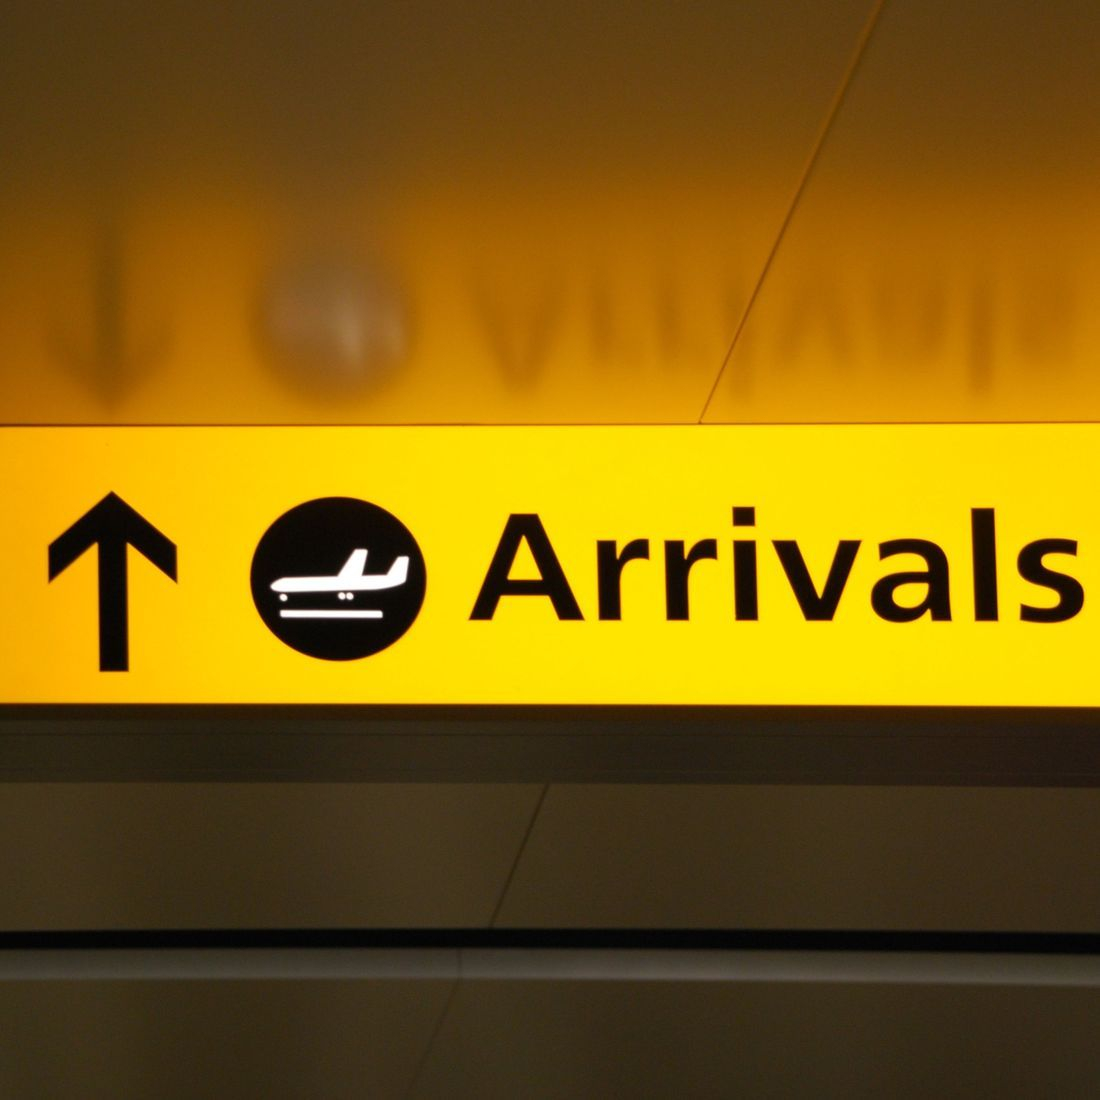 yellow airport arrivals sign with arrow